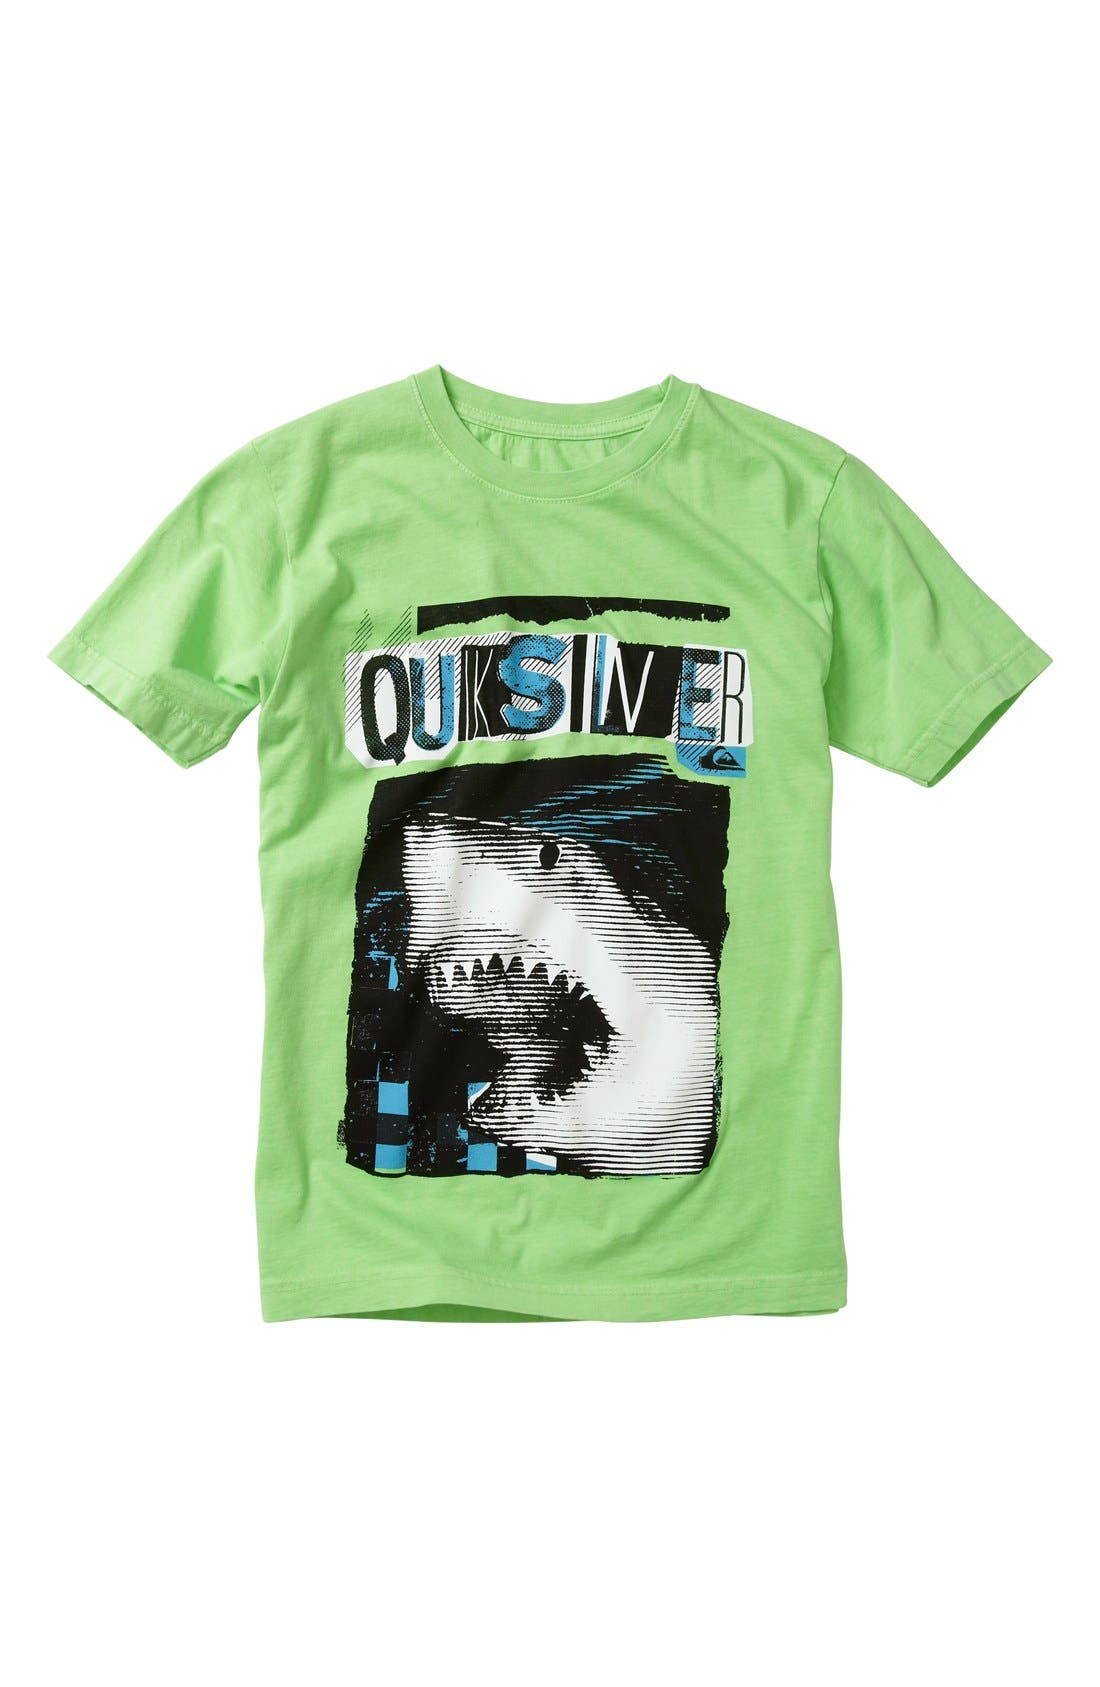 Alternate Image 1 Selected - Quiksilver 'Bitten' Short Sleeve T-Shirt (Little Boys)